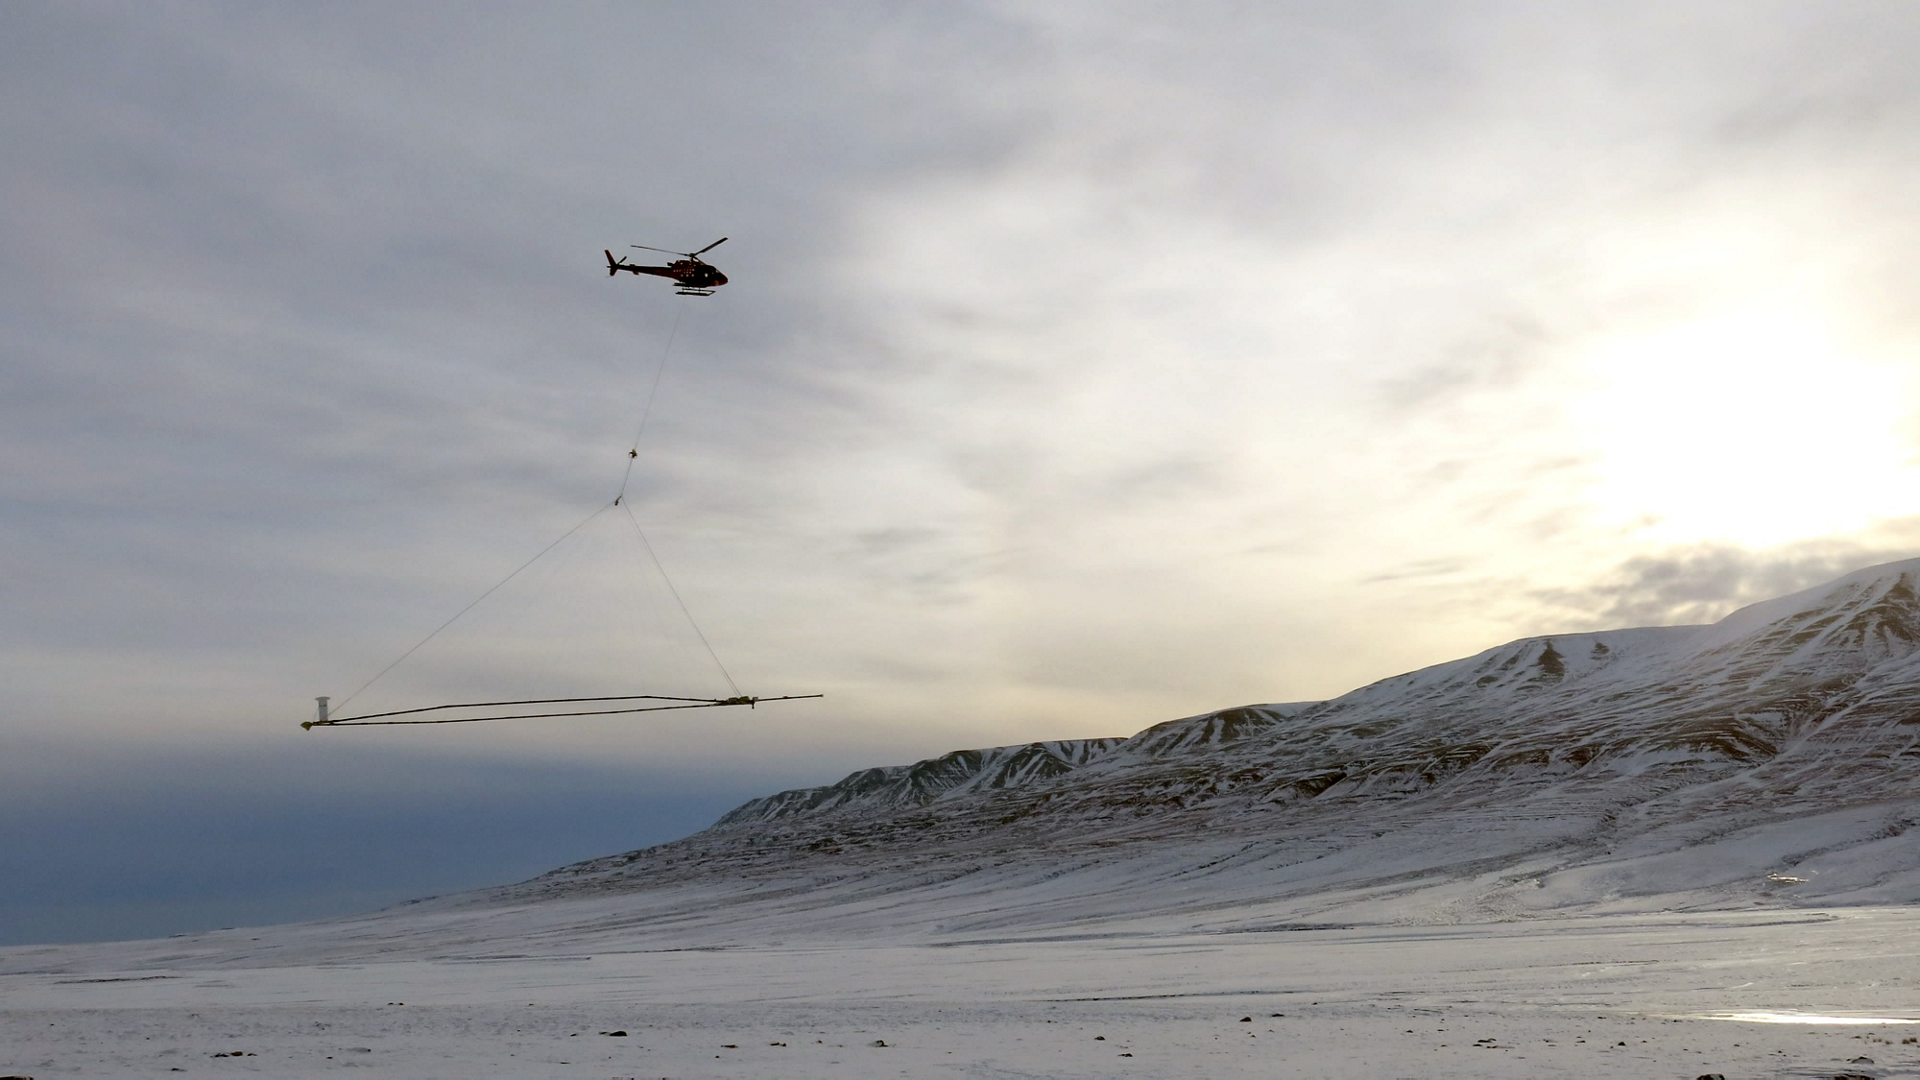 An H125 deployed in Greenland maps groundwater using the geophysical system from SkyTEM